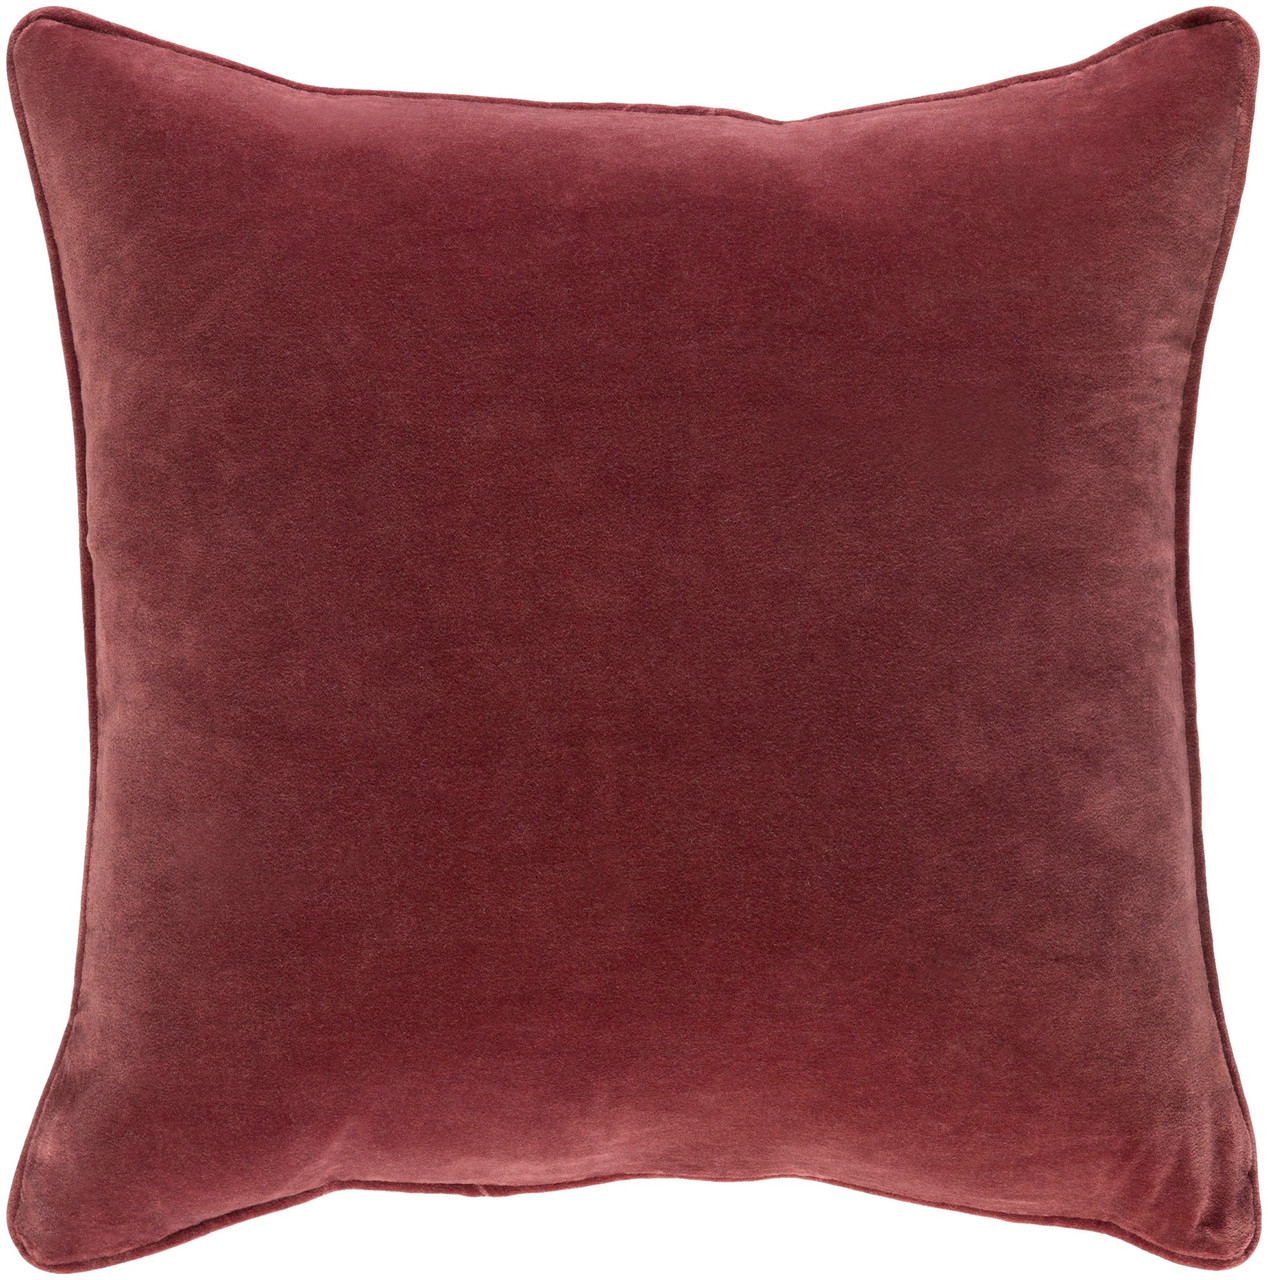 18 Wine Red Velvet Square Throw Pillow Down Filler Christmas Central